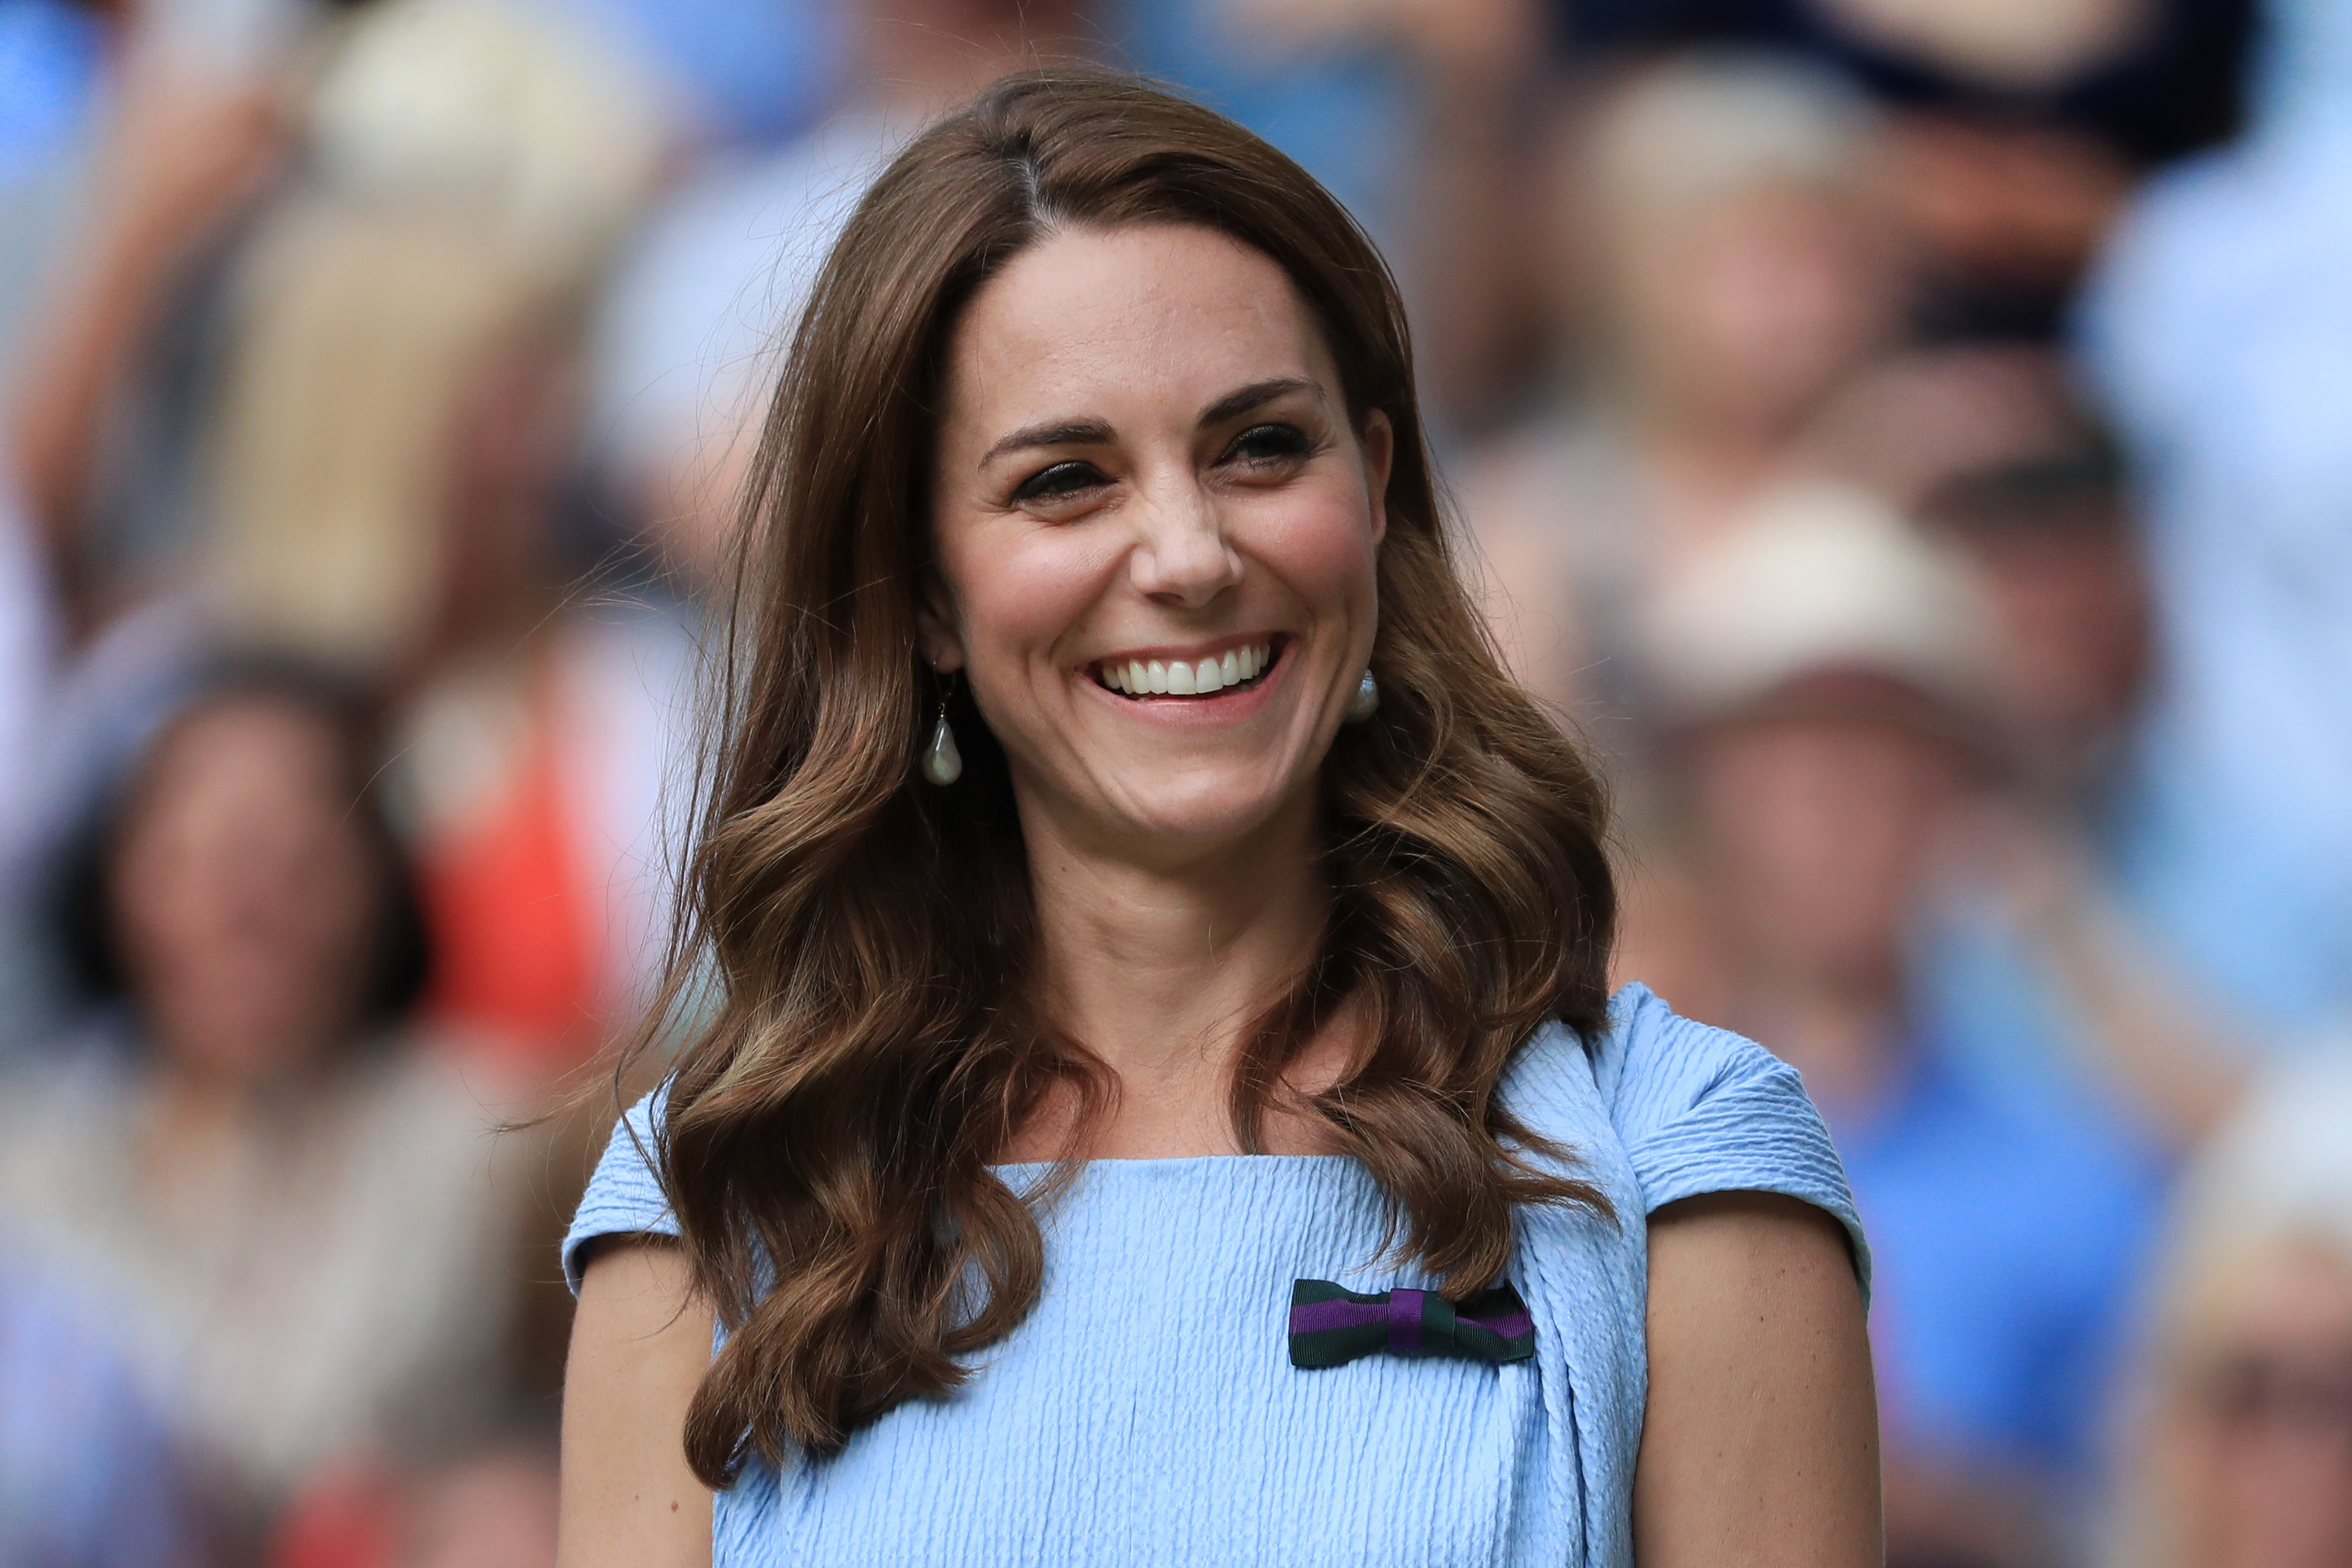 LONDON, ENGLAND - JULY 14: Catherine, Duchess of Cambridge laughs and smiles on Day 13 of The Championships - Wimbledon 2019 at the All England Lawn Tennis and Croquet Club on July 14, 2019 in London, England. (Photo by Simon Stacpoole/Offside/Getty Images)